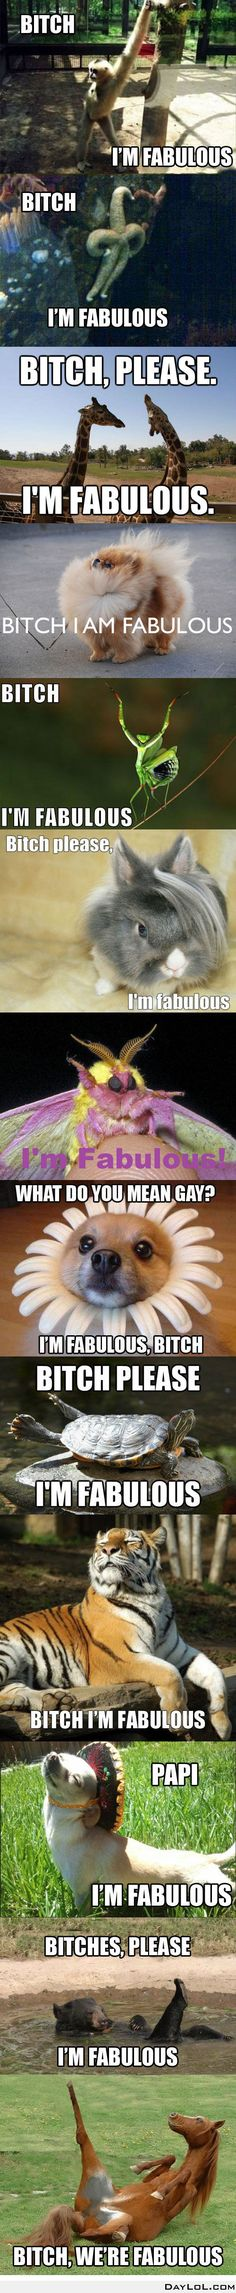 Fabulous collection animals, laugh, fabul anim, stuff, funni, bitch, humor, smile, thing